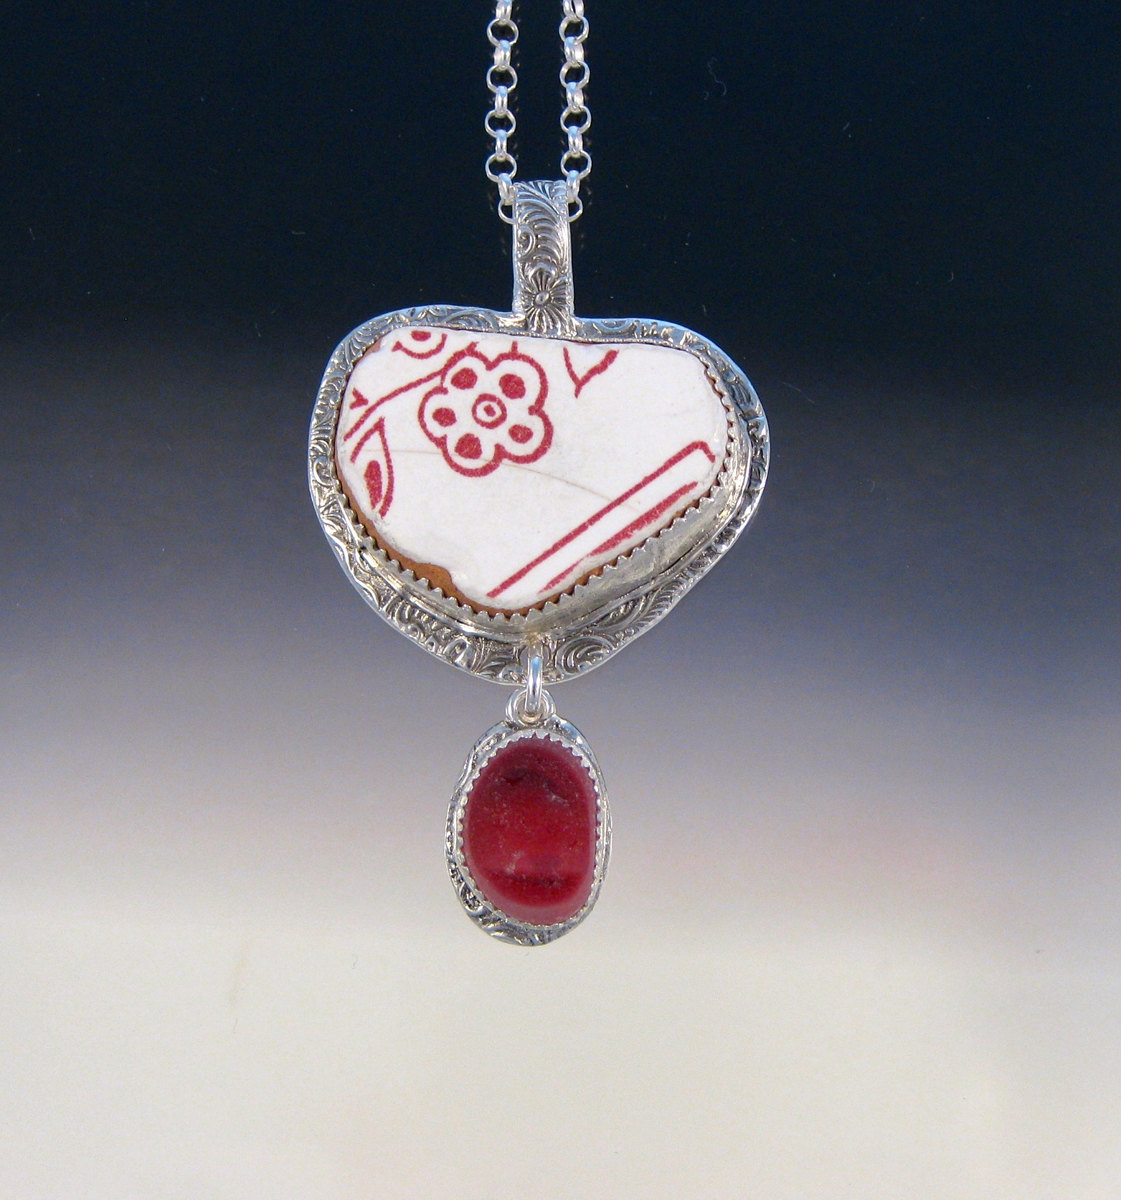 P5053 - The Perfect Valentine pendant (large view)